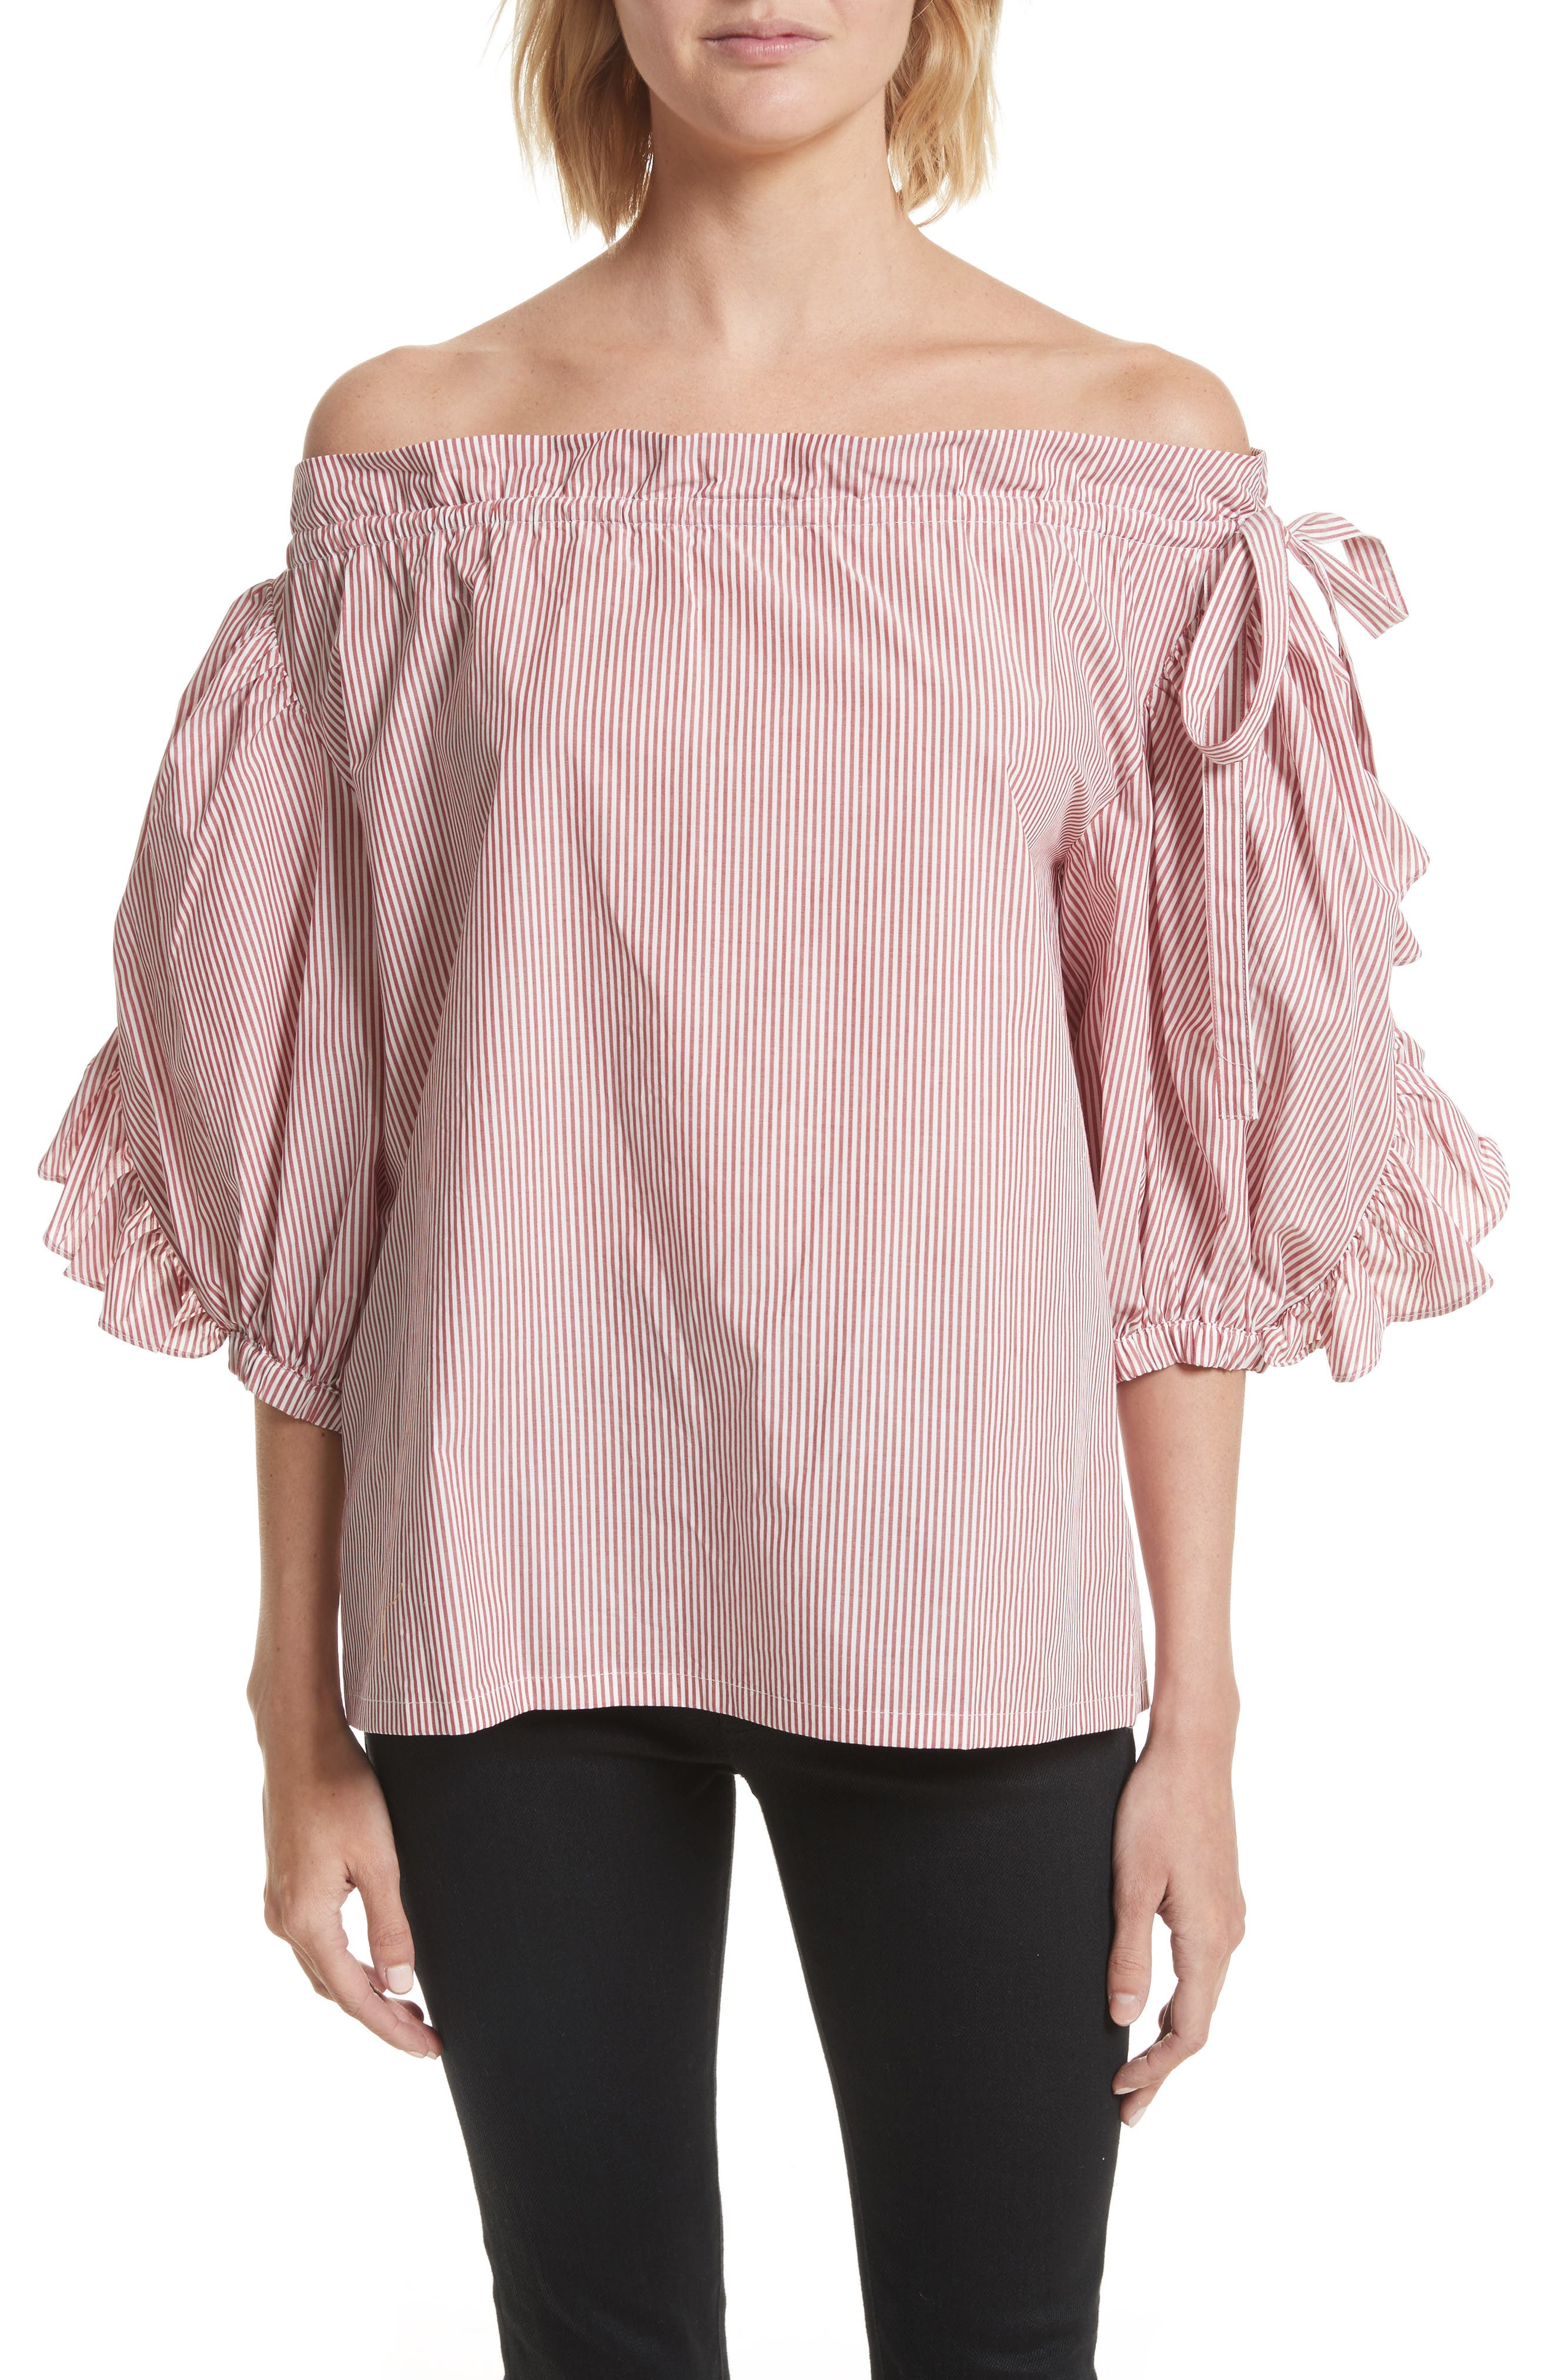 ROBERT RODRIGUEZ Stripe Ruffle Off the Shoulder Top